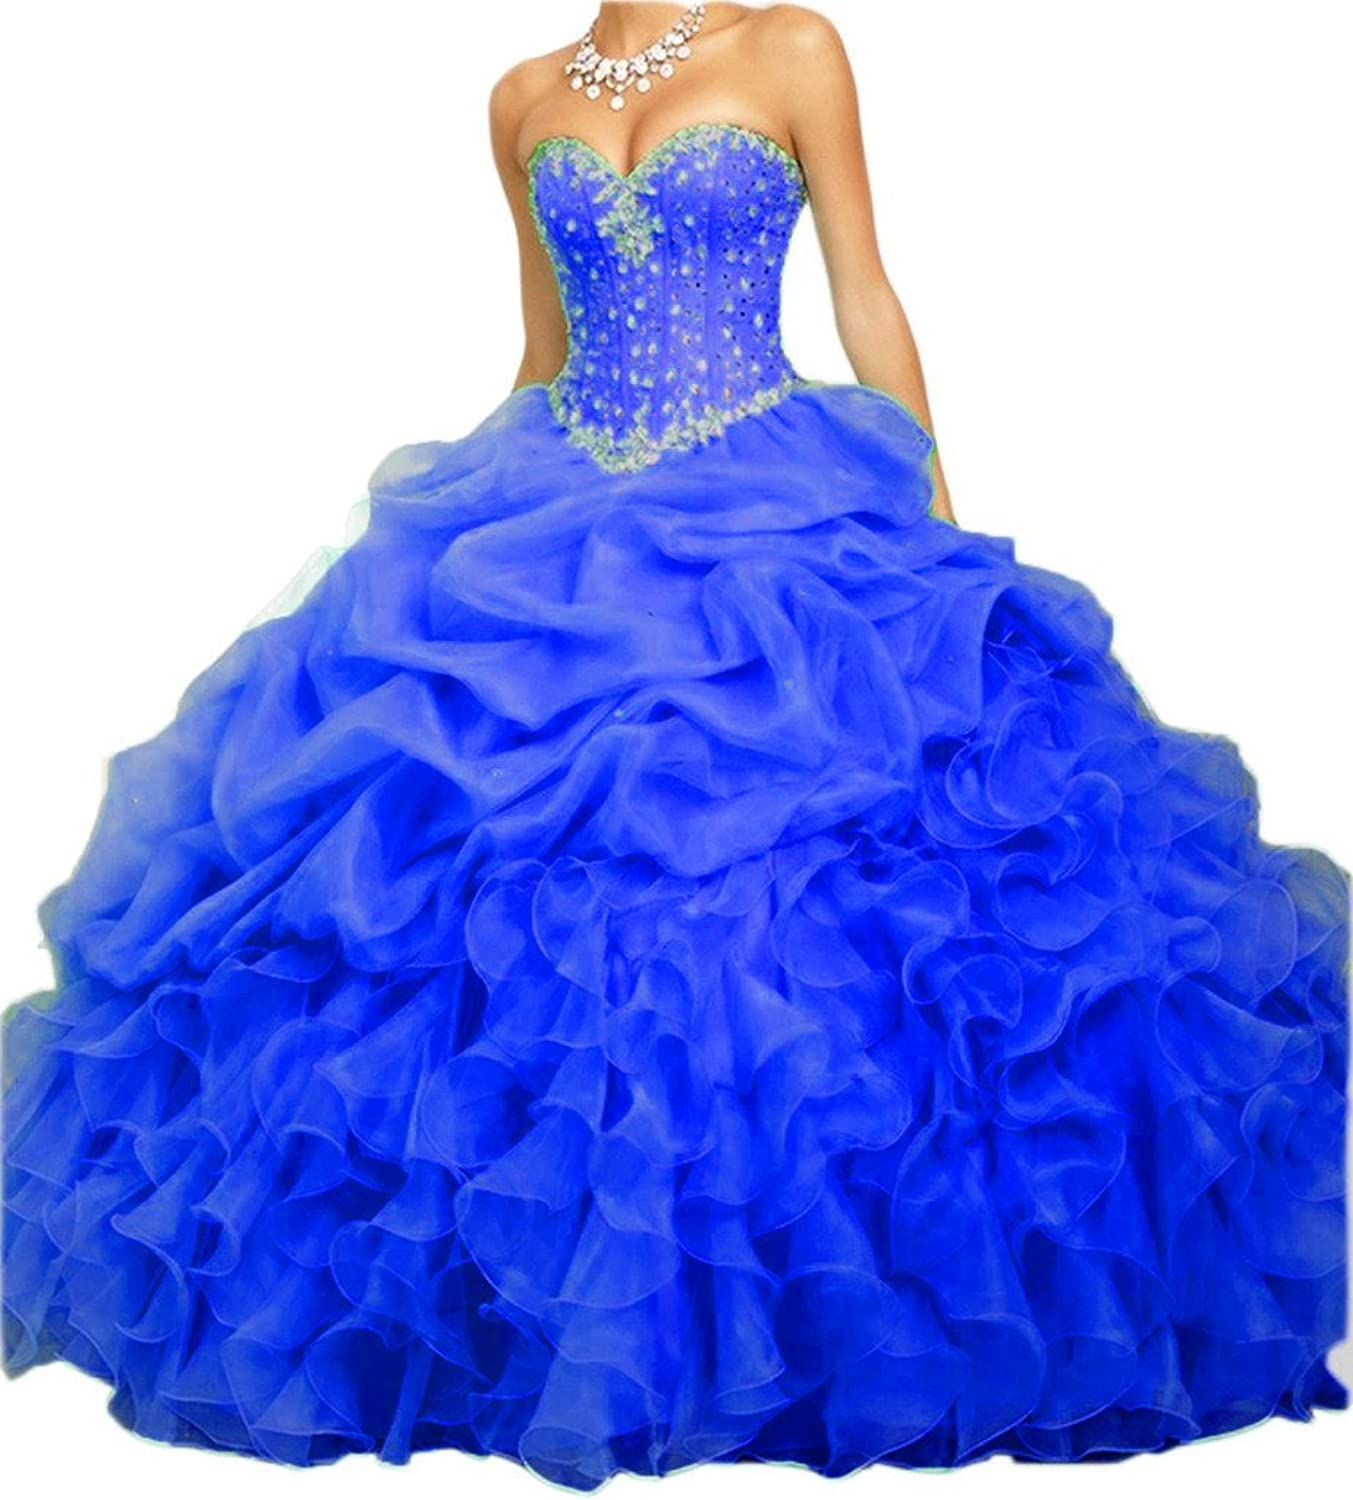 Zhu Li Ya Women's Beaded Organza Quinceanera Dresses 2016 Formal Prom Dress